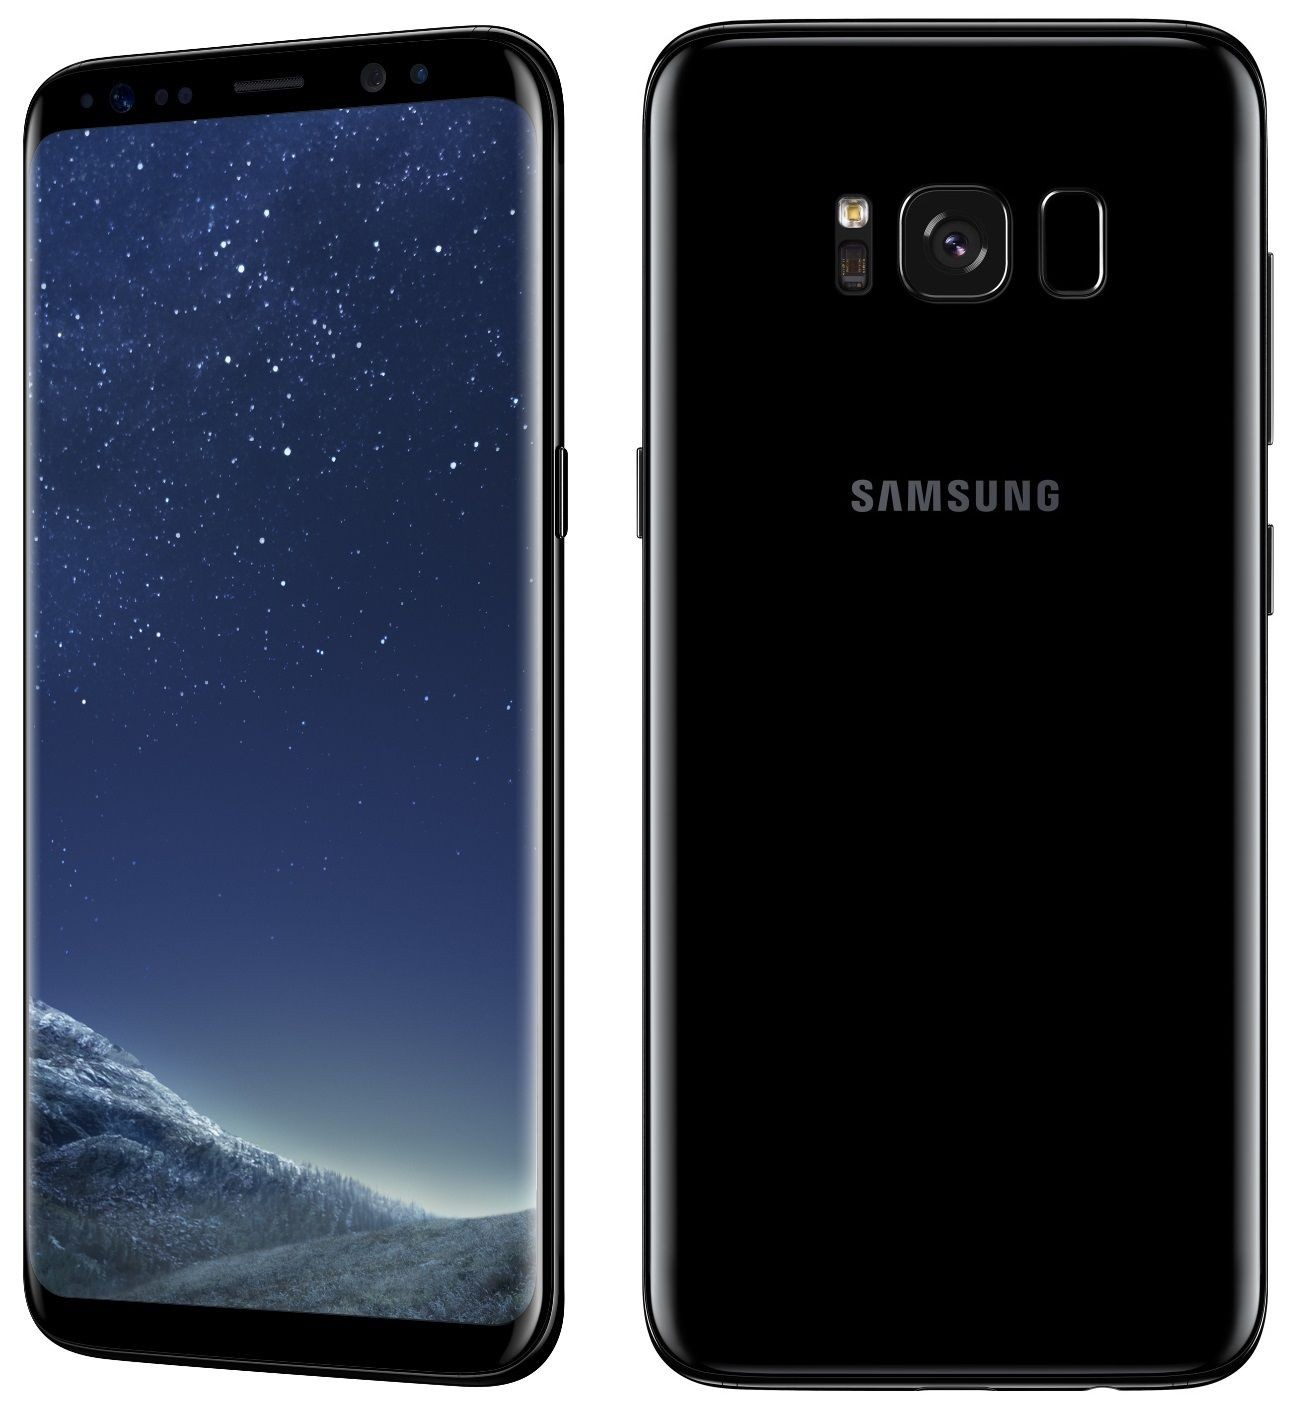 Samsung Galaxy On5 - Graded